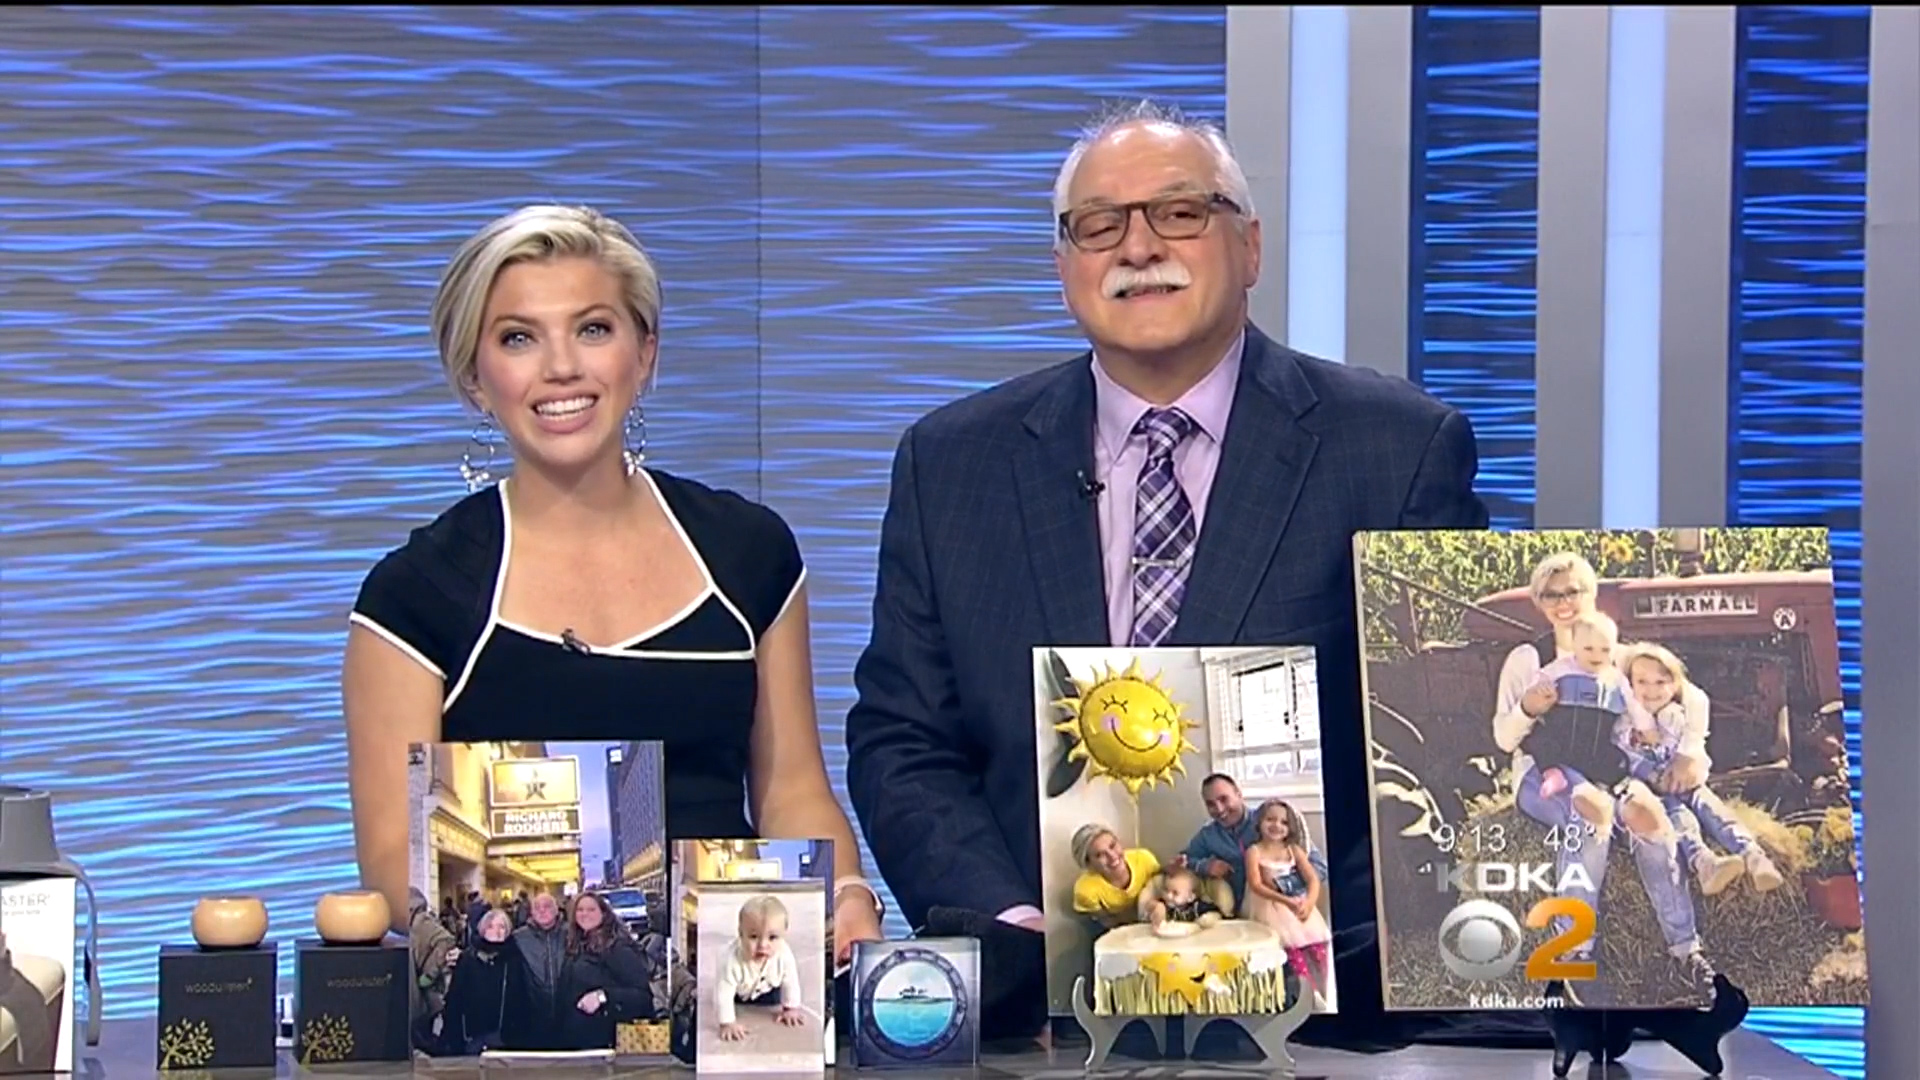 (PIC1) CBS-TV (Pittsburgh) SPRING TECH & MOT HER'S DAY GIFTS with DR FRANK 04-24-2018.jpg